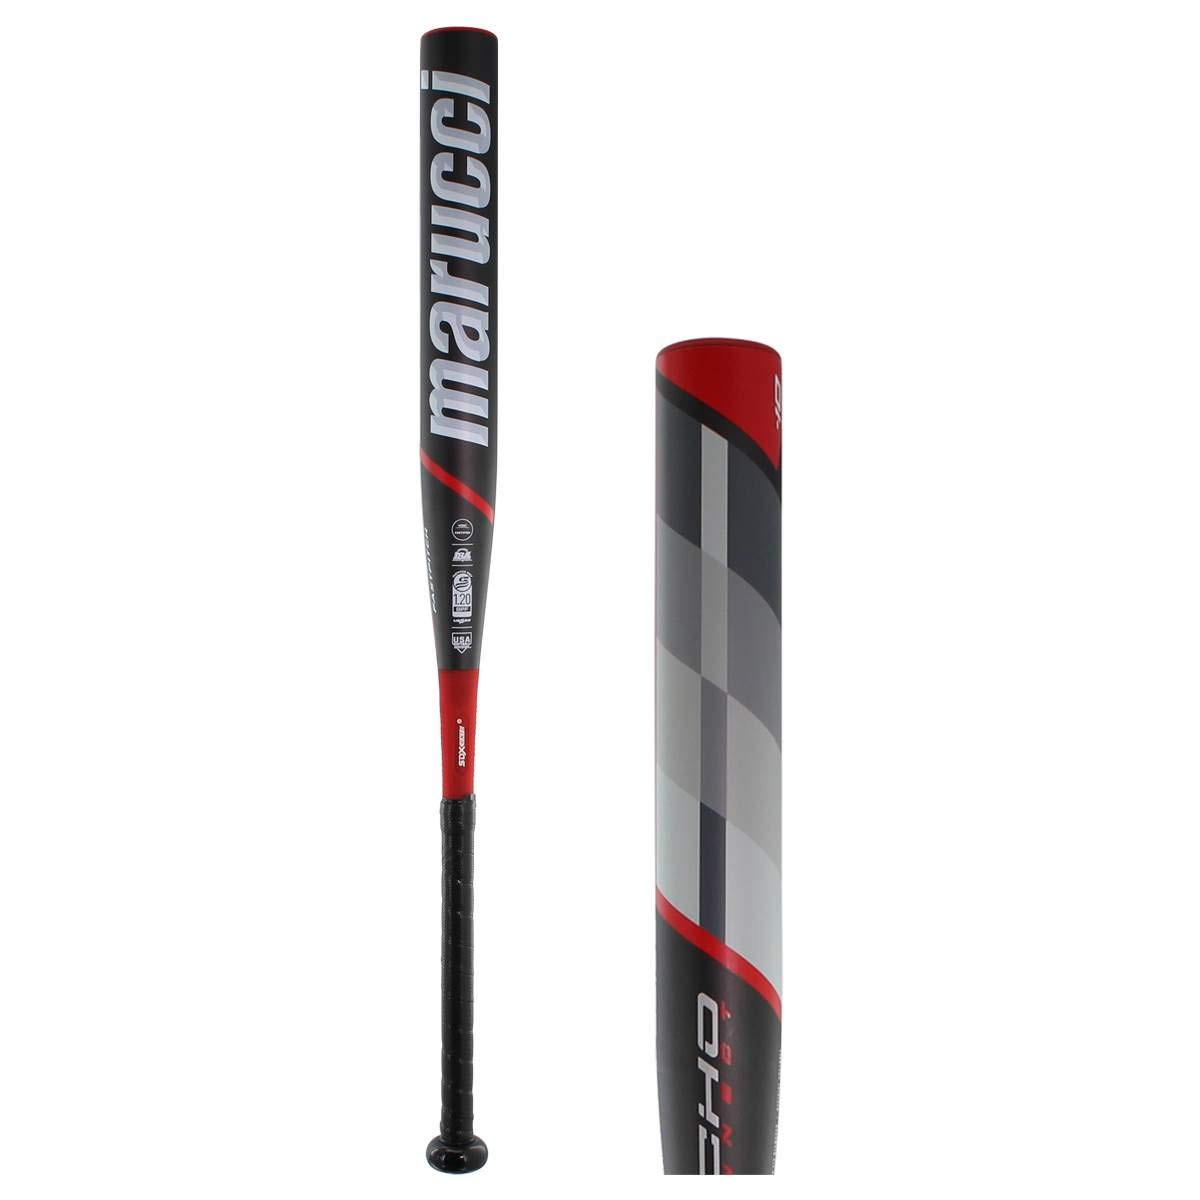 marucci-echo-connect-10-fastpitch-softball-bat-mfpec10-32-in-22-oz MFPEC10-3222 Marucci 840058728491 New MDX Composite Barrel with a Multi-Directional Composite Design to Create